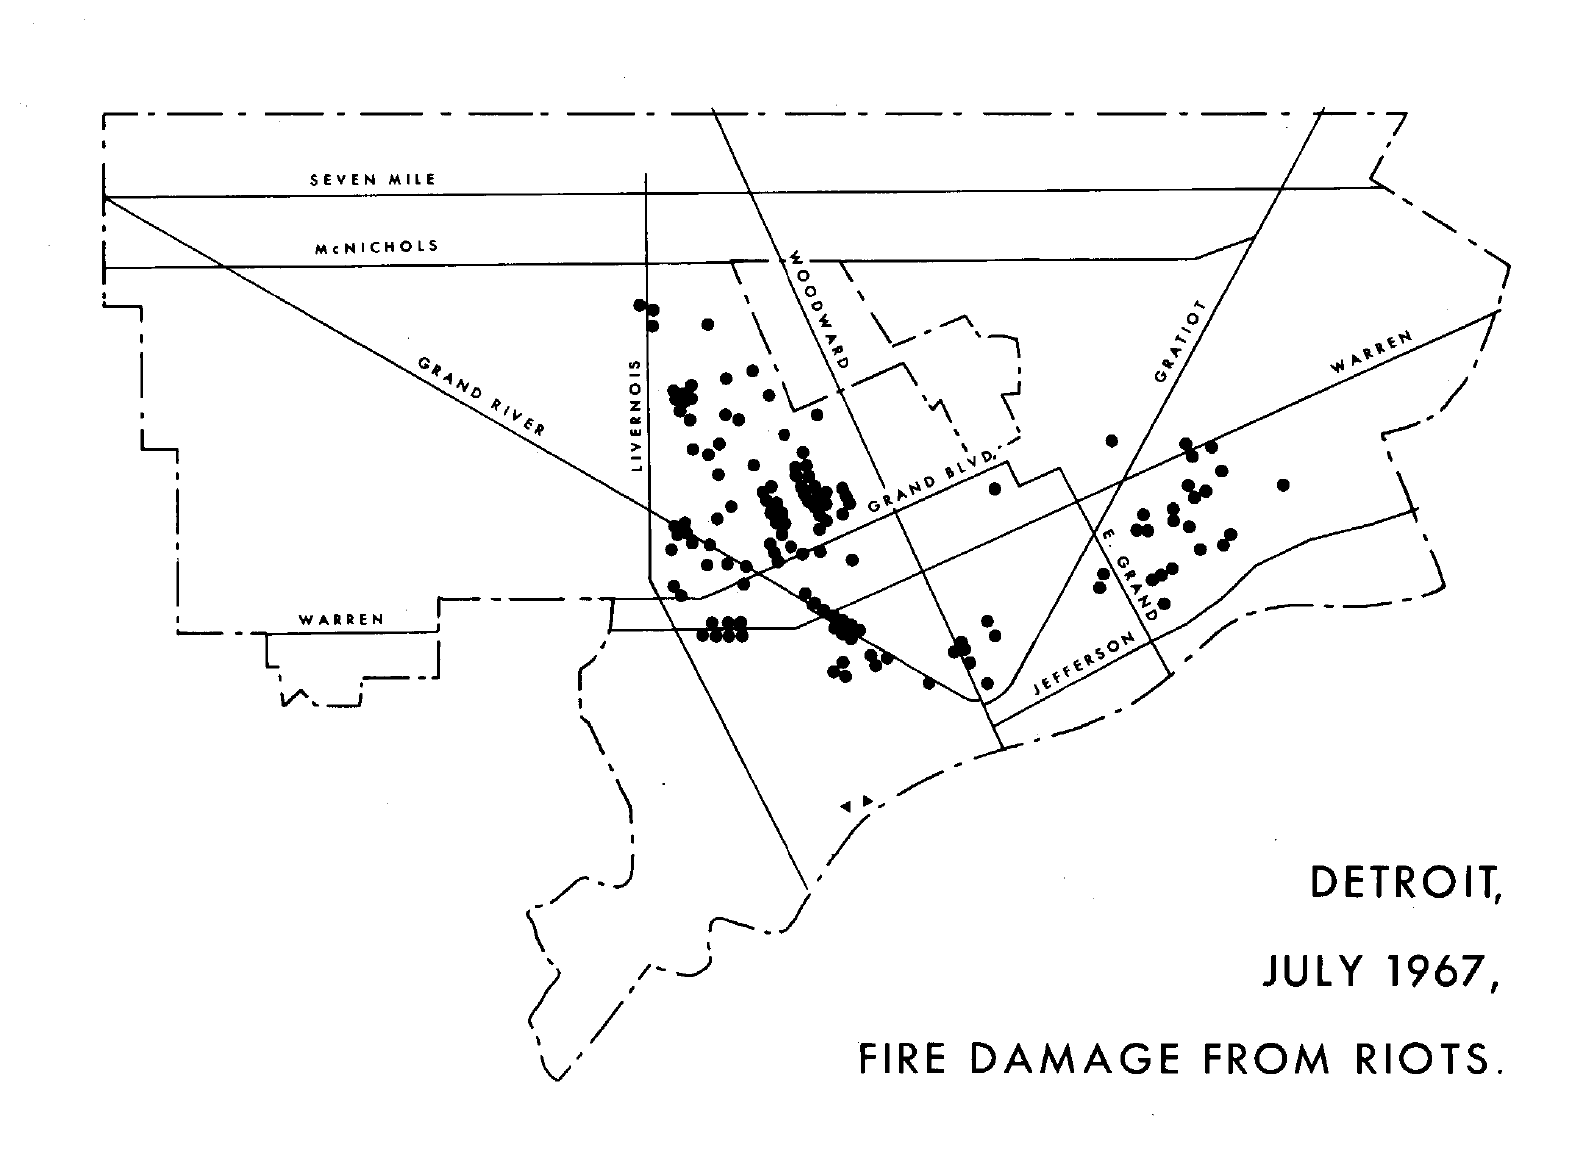 Map Of Detroit Riots Fire Damage DETROITography - Map of us before and after the riots